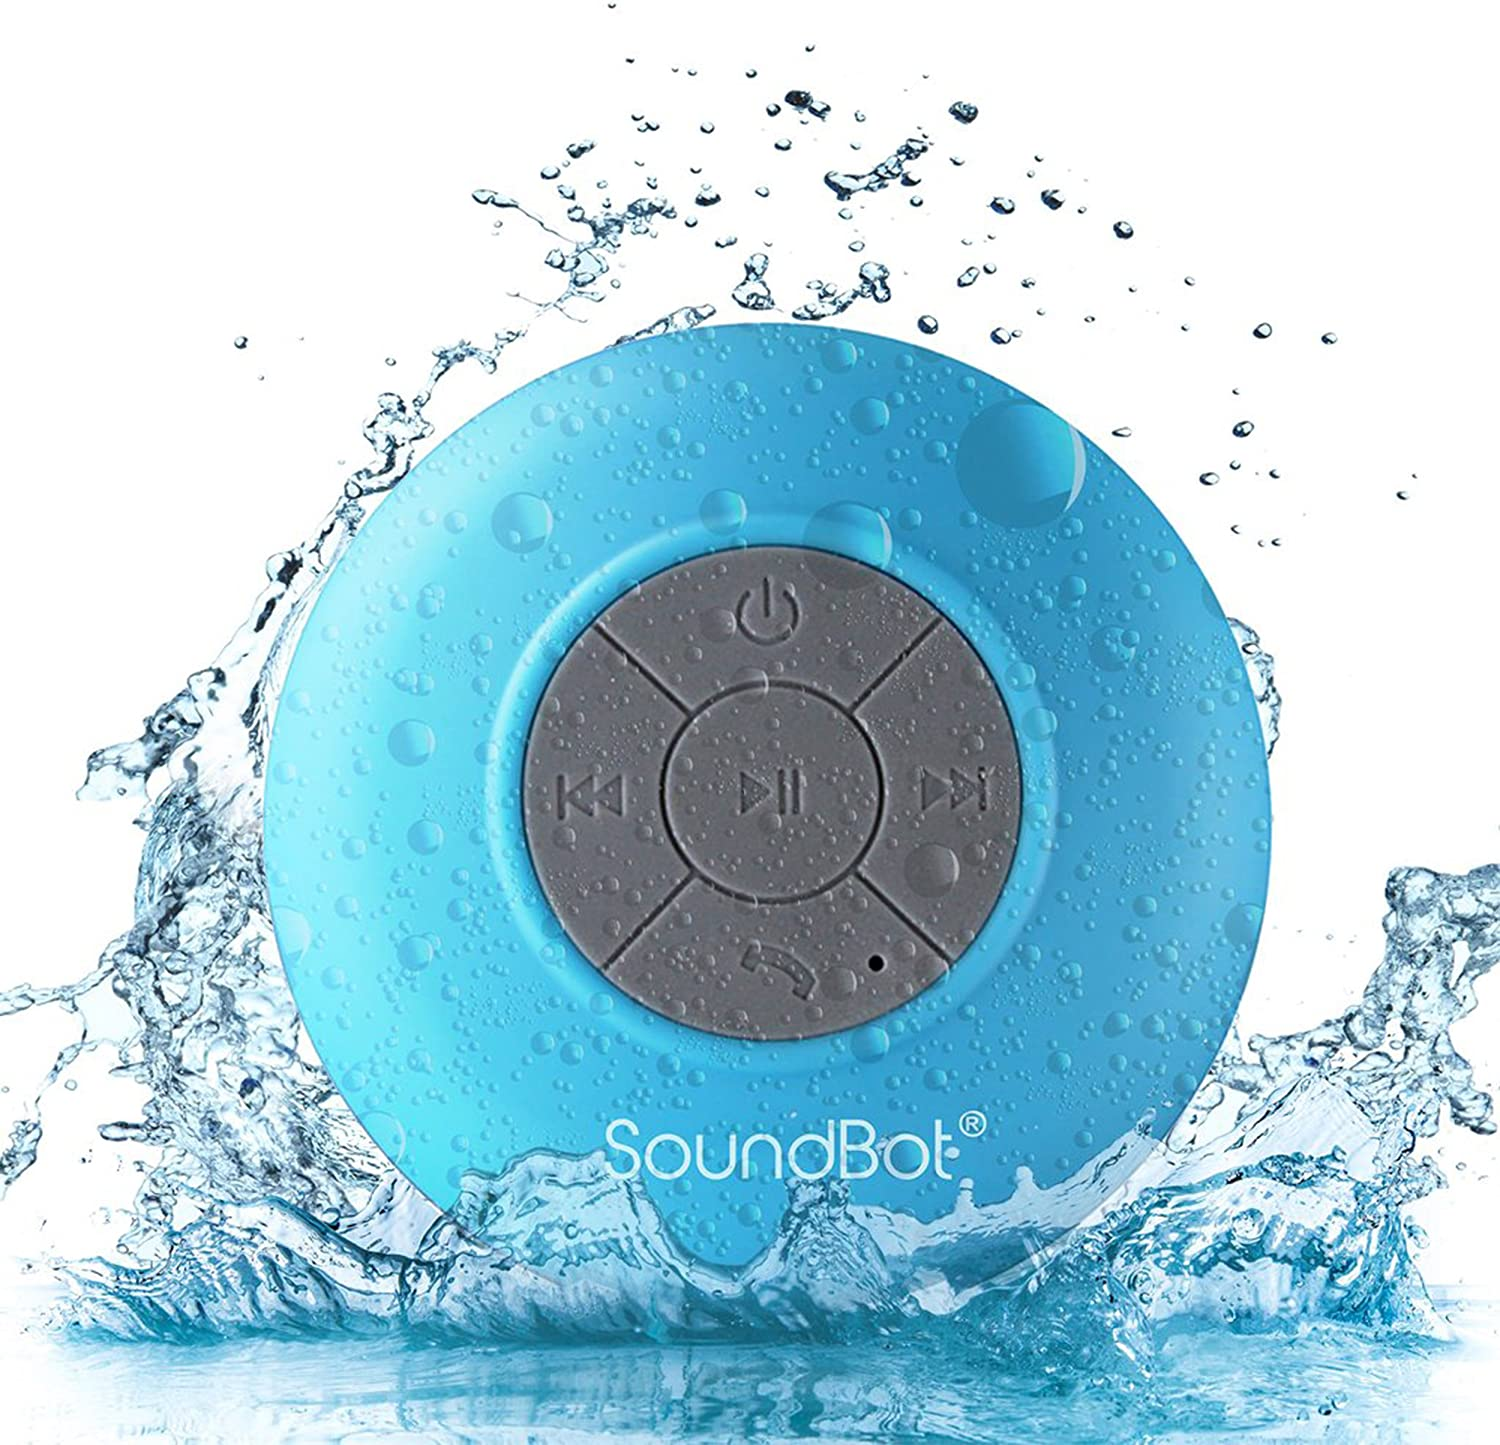 SoundBot SB9 HD Water Resistant Bluetooth 9.9 Shower Speaker, Handsfree  Portable Speakerphone with Built-in Mic, 9hrs of playtime, Control Buttons